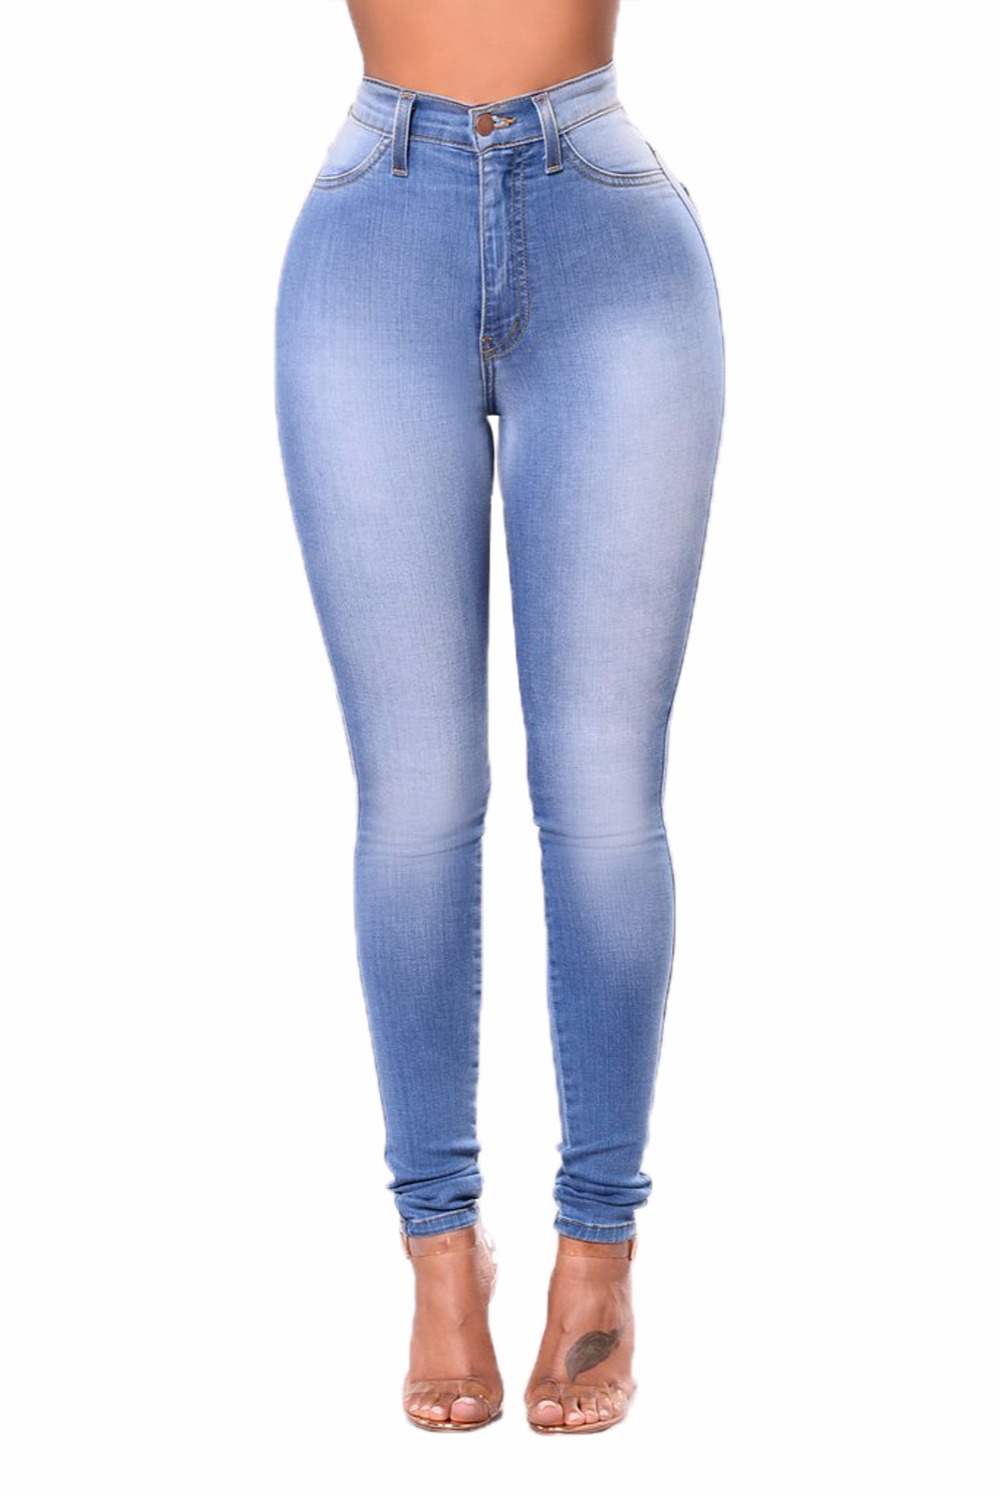 Wholesale S-3XL Fashion Stretch Jeans Skinny Pencil Leggings Jeans Xxx Usa Sexy Ladies Leggings Sex Photo Women Jeans